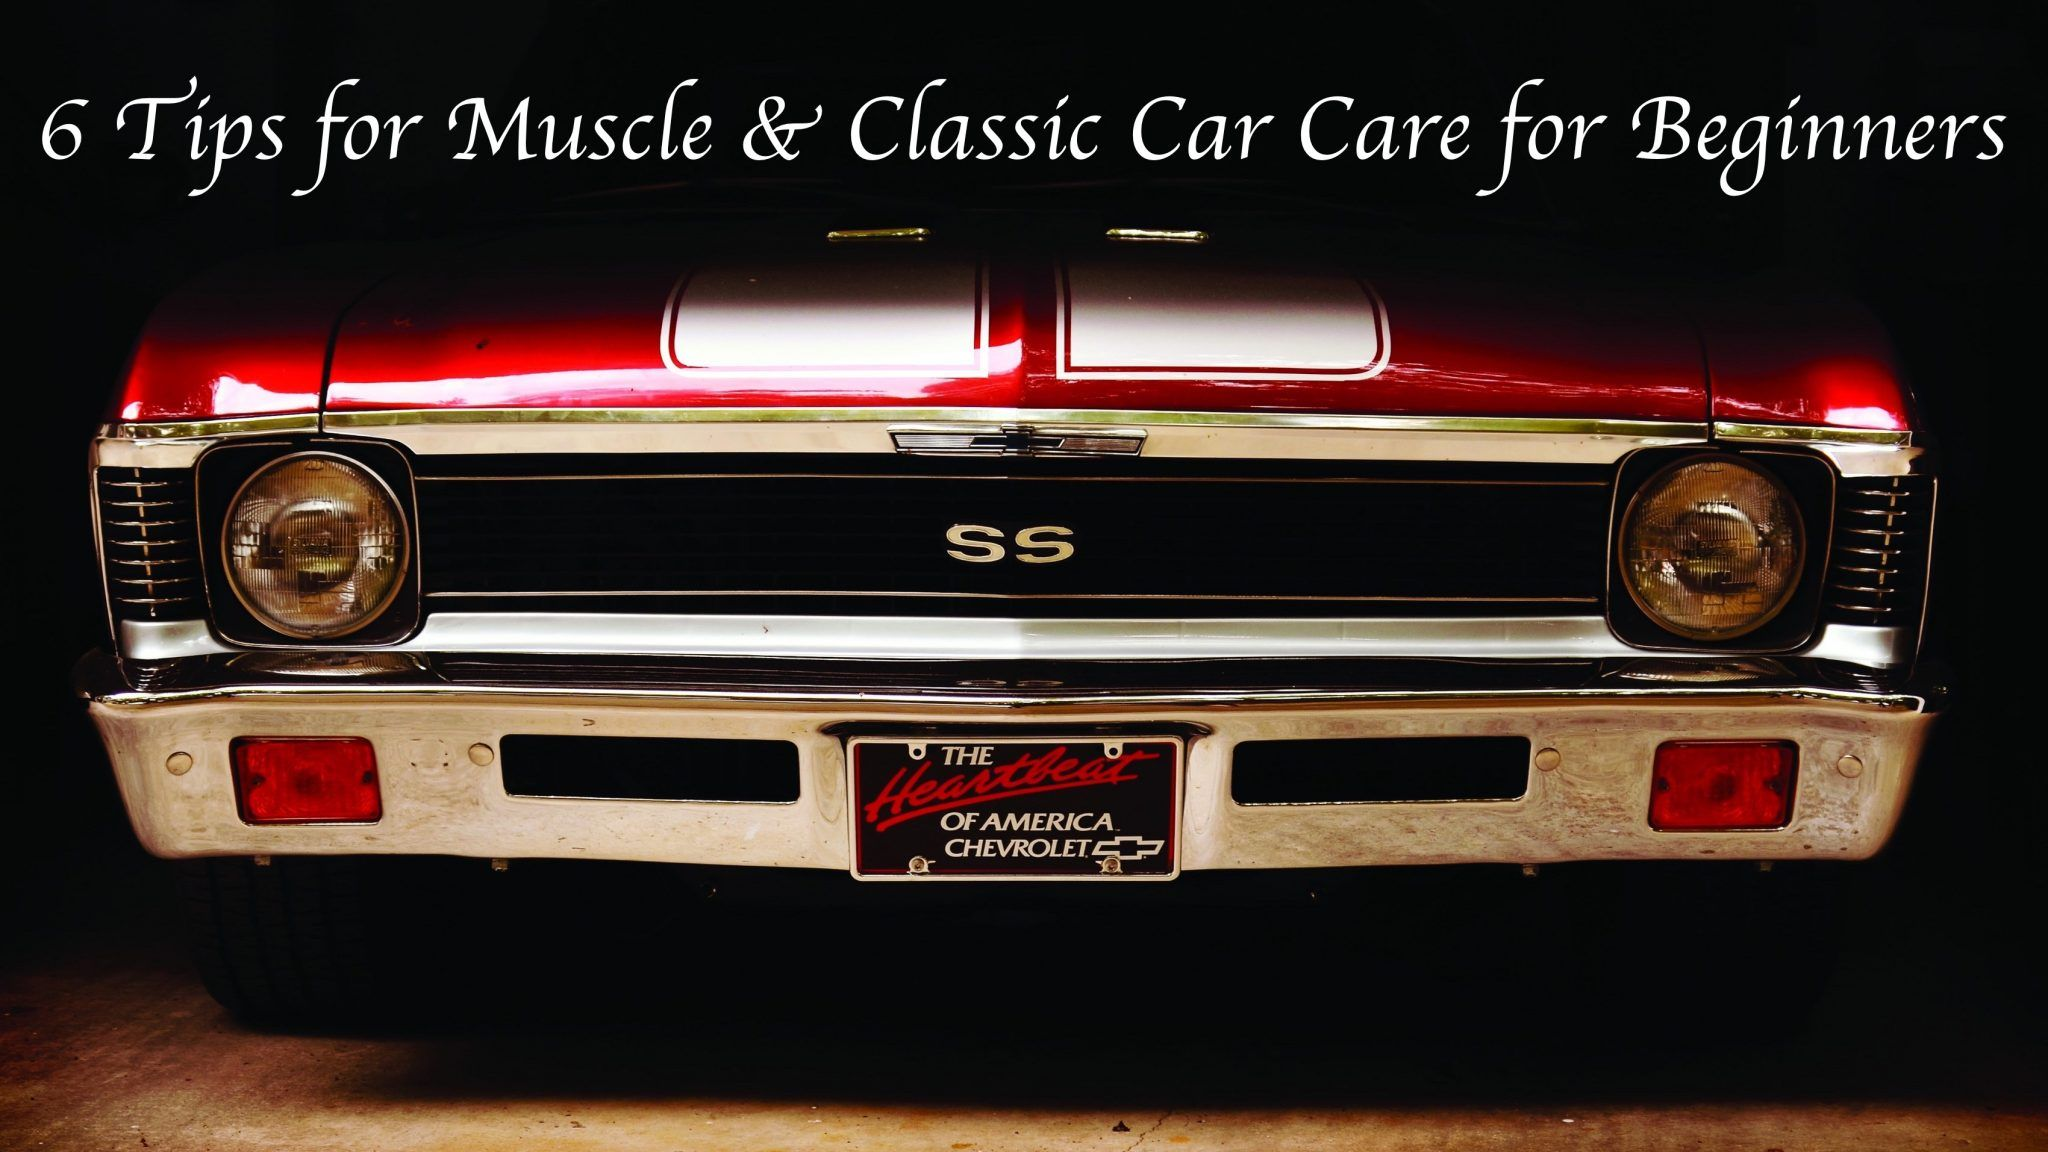 Basic Tips for Classic and Muscle Car Care [from our Shop